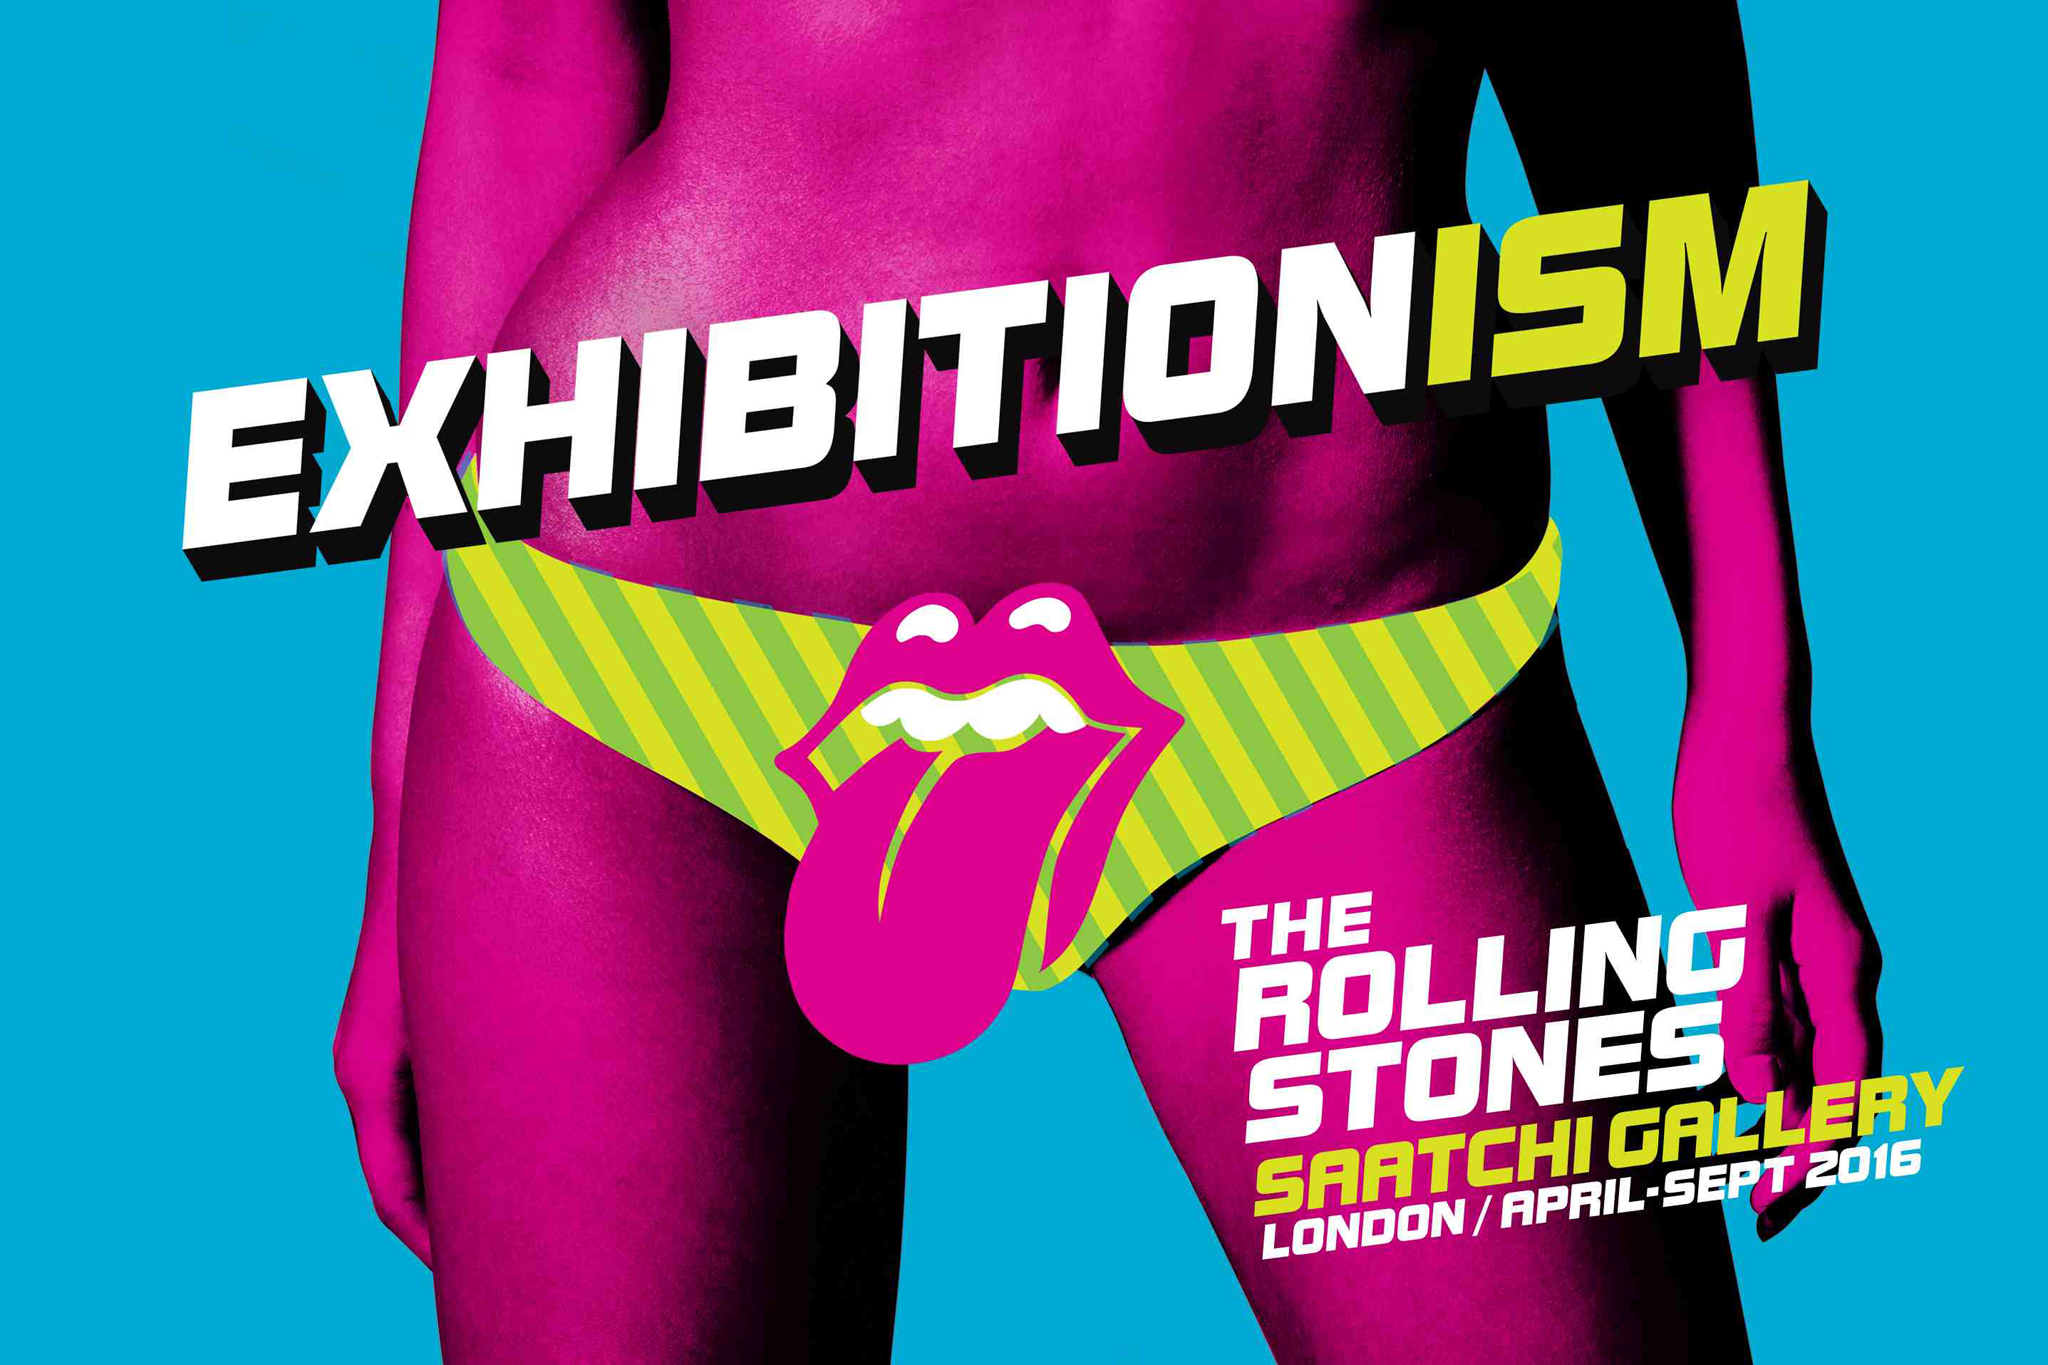 A look inside The Rolling Stones Exhibitionism